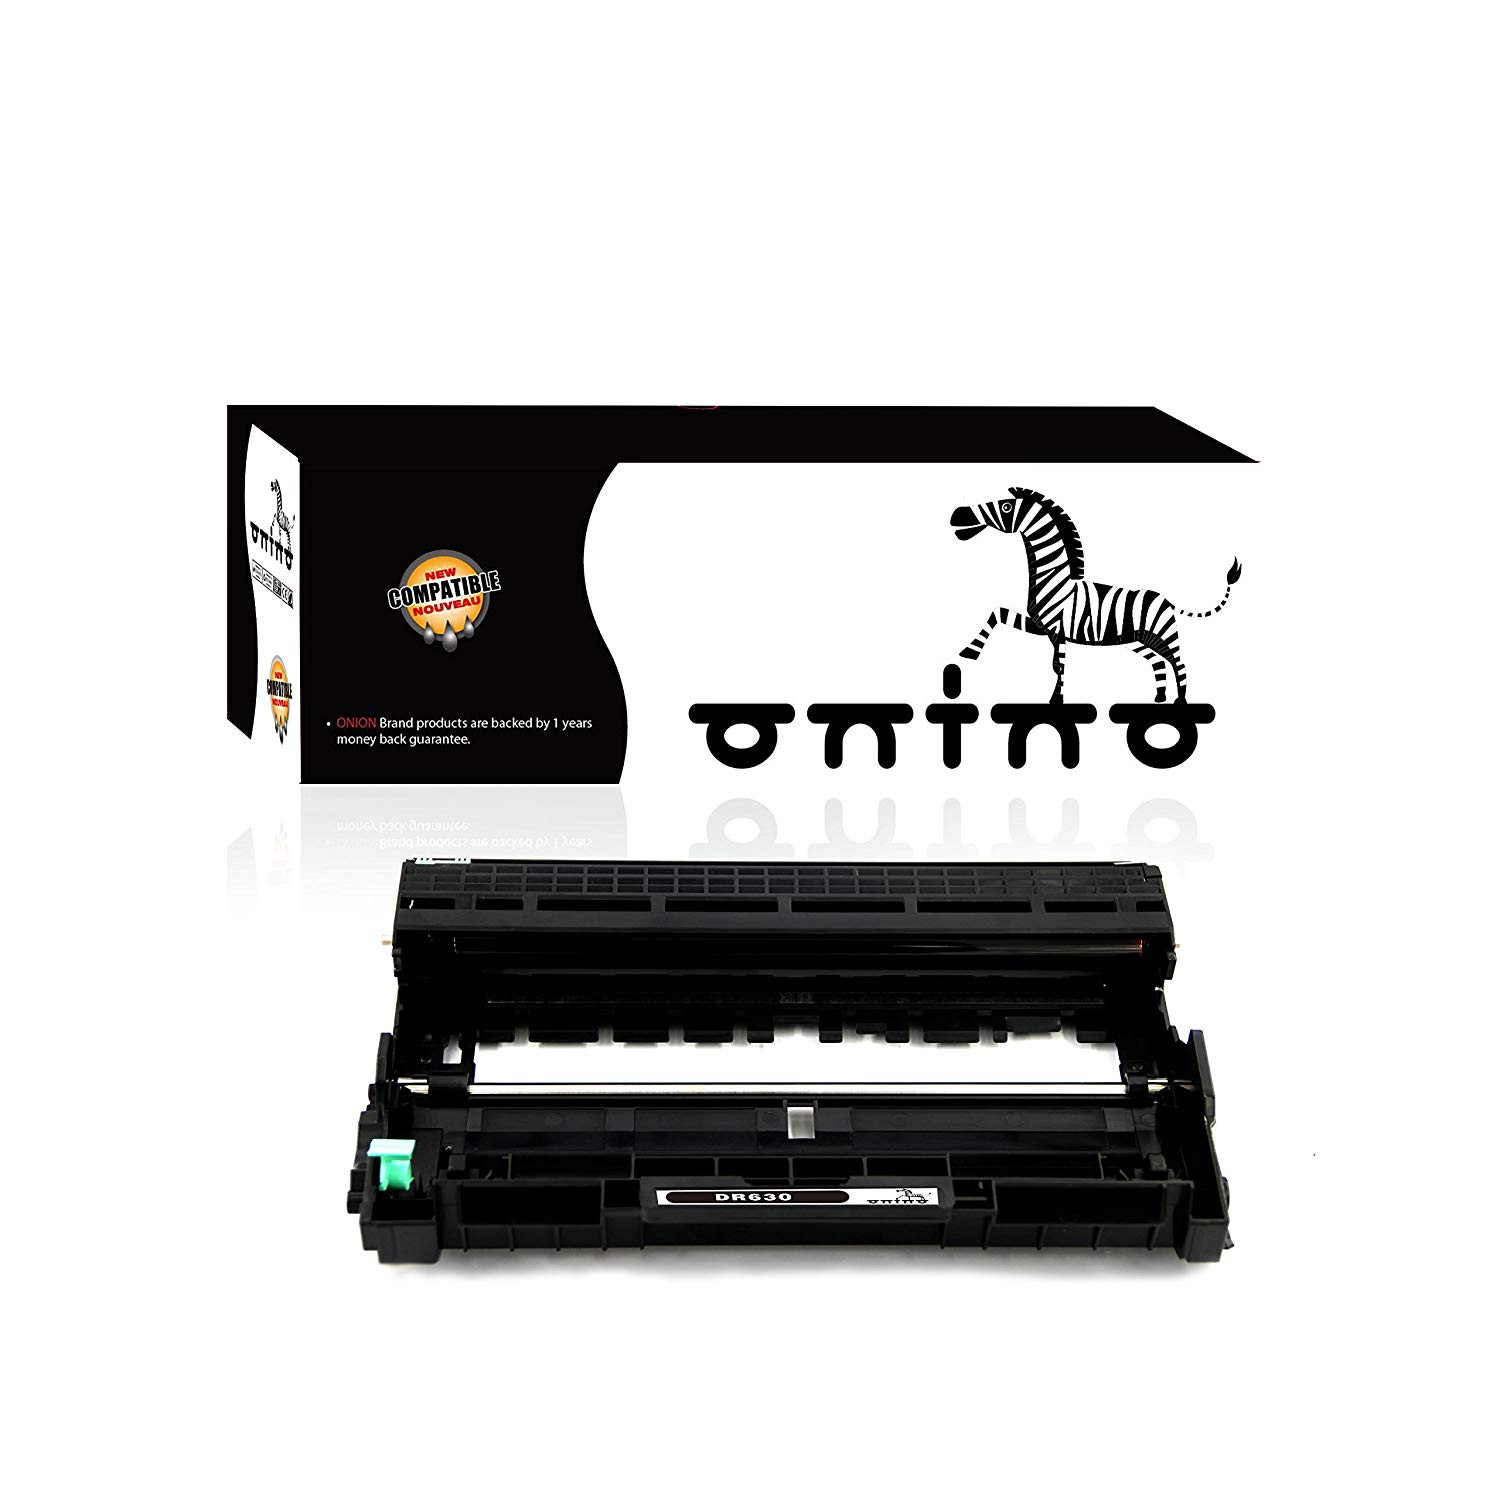 onino Compatible Brother DR630 Drum Unit Replacement for HL-L2340DW,HL-L2380DW,HL-L2300D,HL-L2360DW,DCP-L2520DW,DCP-L2540DW,MFC-L2720DW,MFC-L2740DW Black